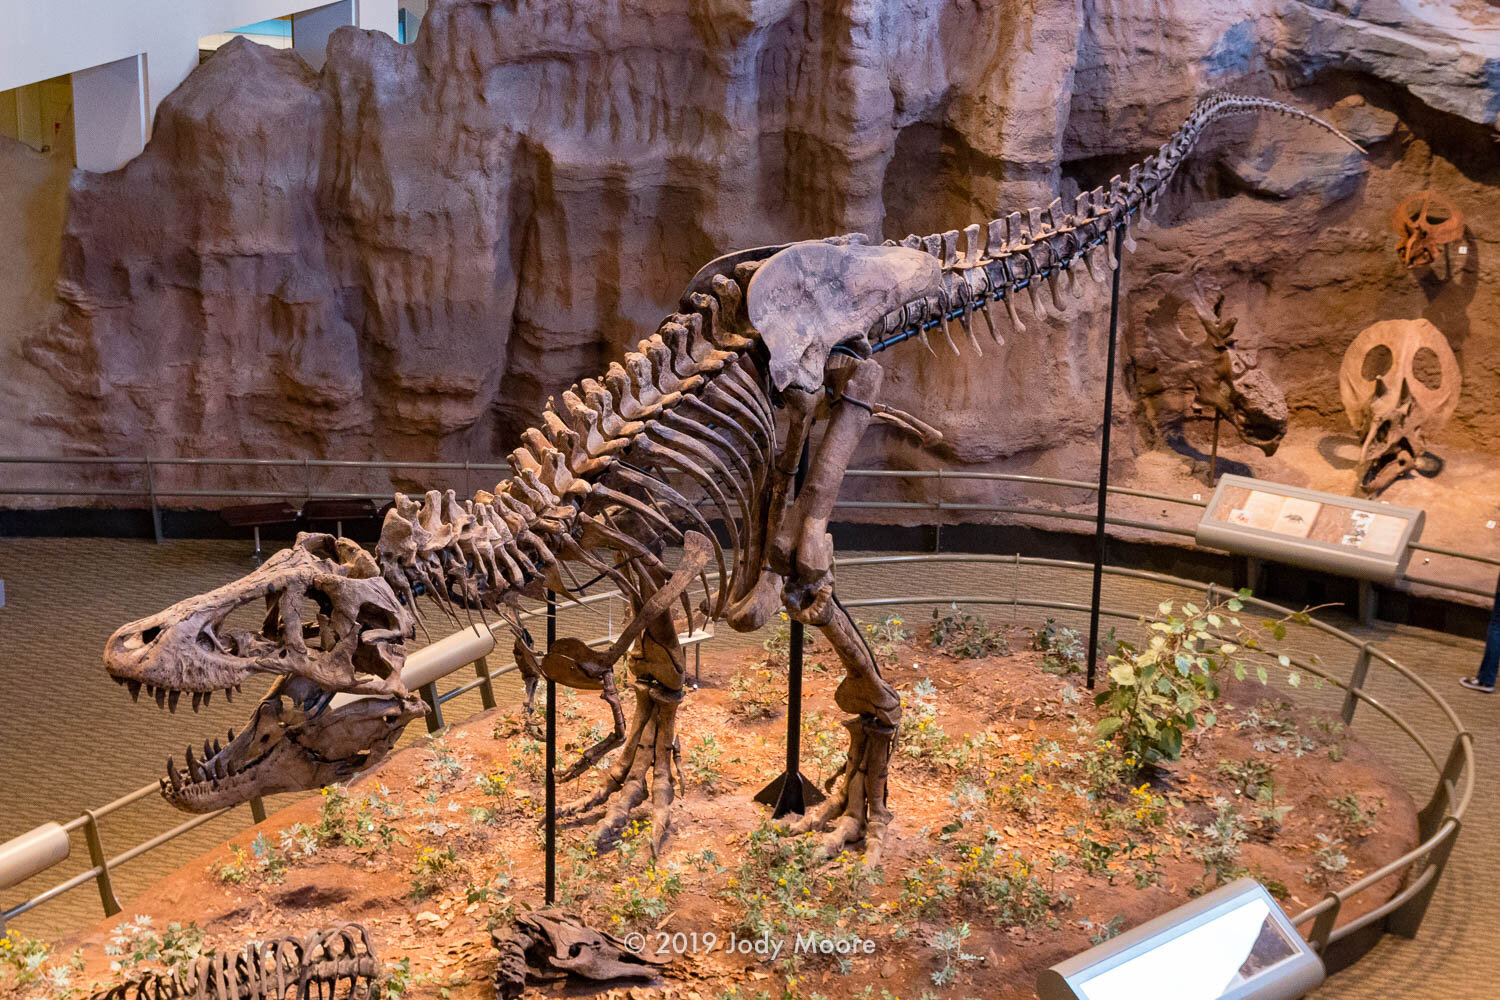 The type specimen for Tyrannosaurus rex is now housed at the Carnegie Museum of Natural History in Pittsburgh, PA.